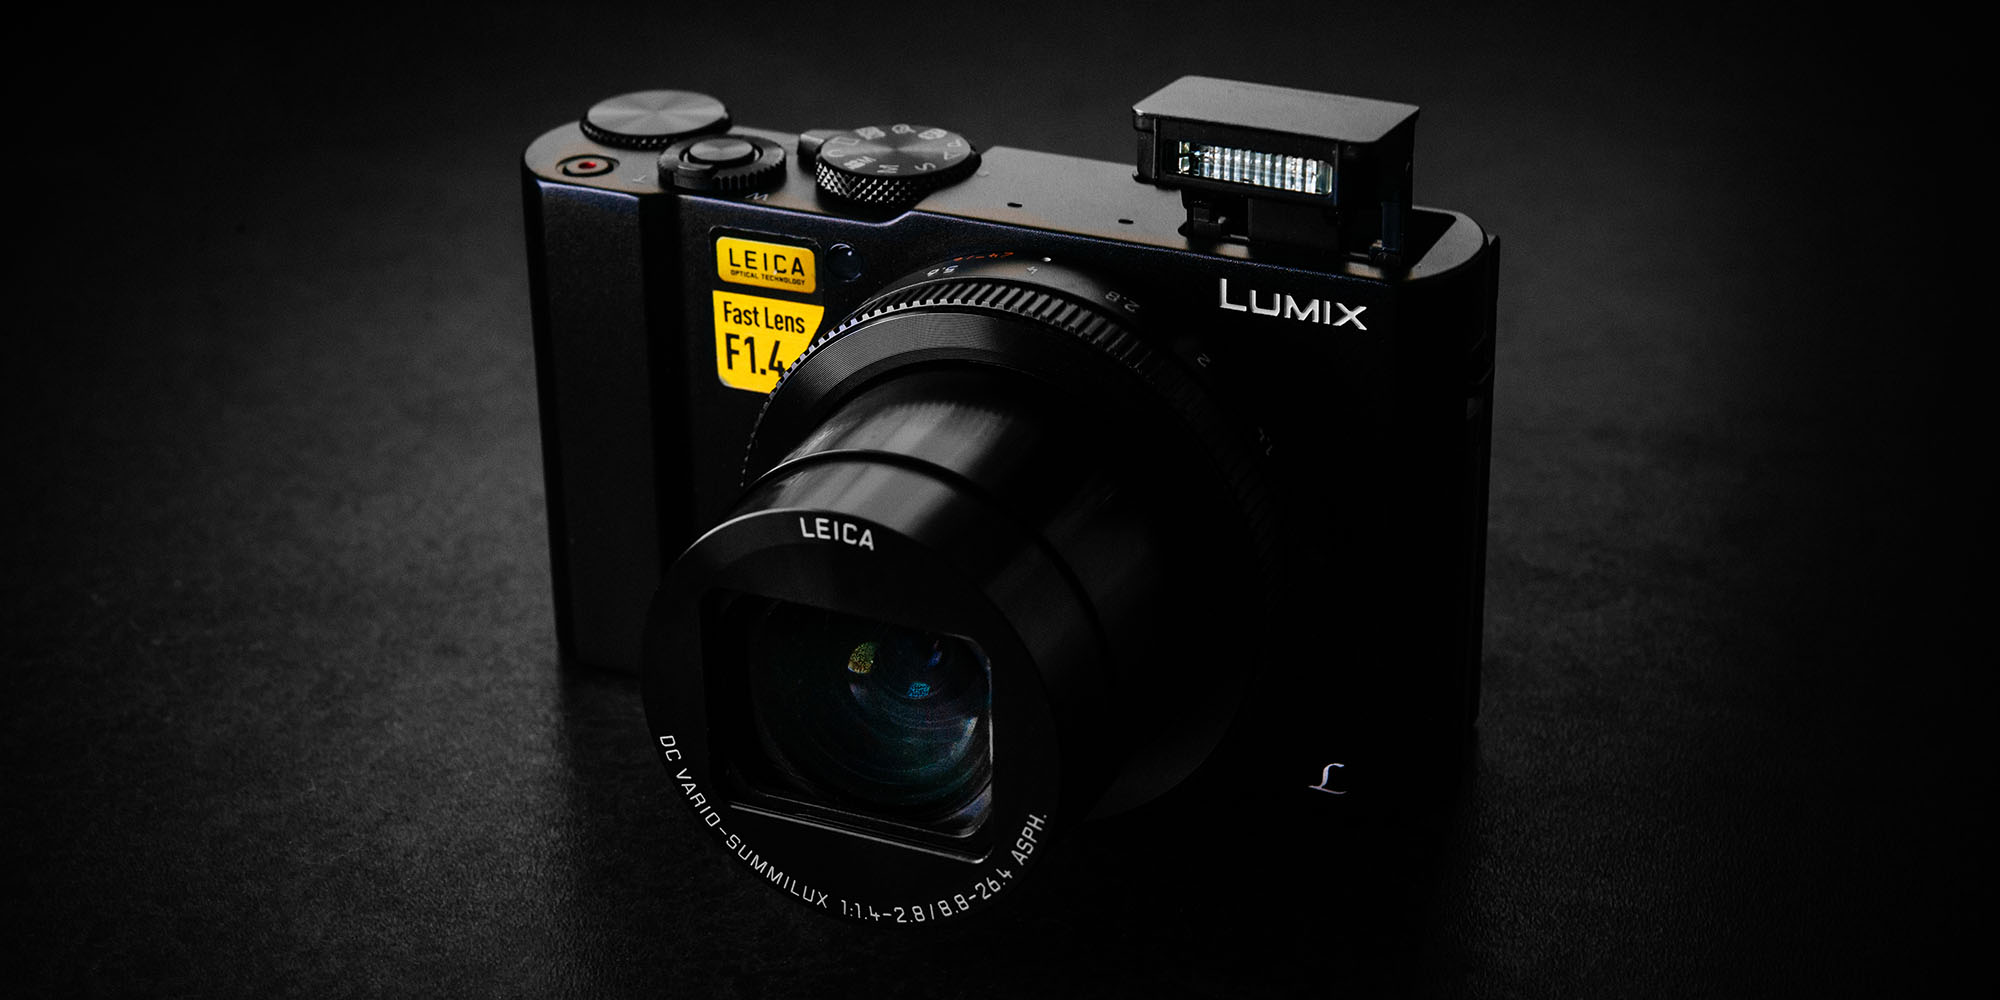 Panasonic Lumix DMC-LX10 / LX15 Review – Review By Richard